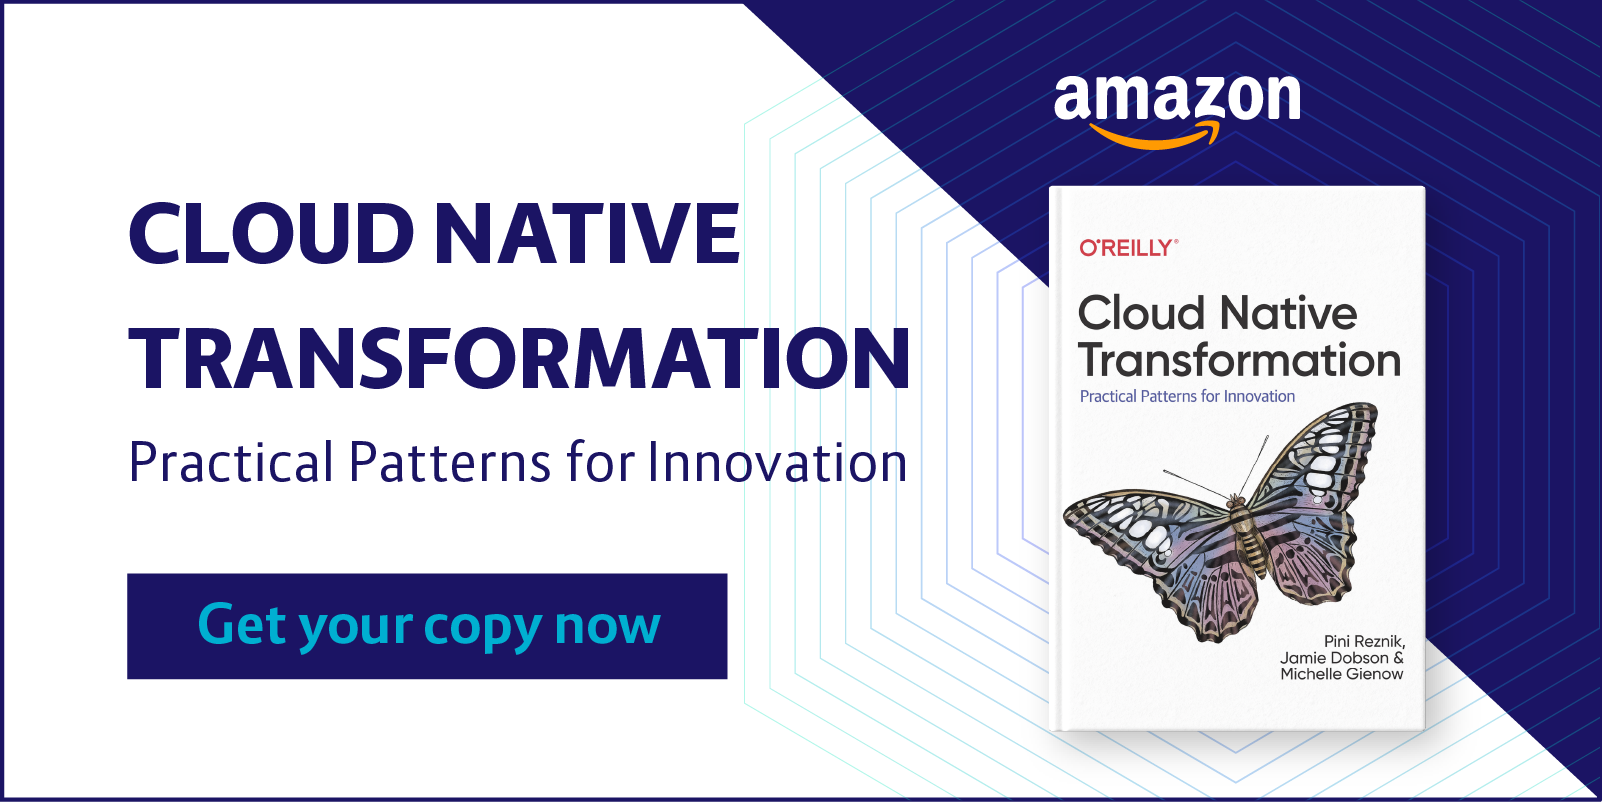 cloud native transformation book excerpt